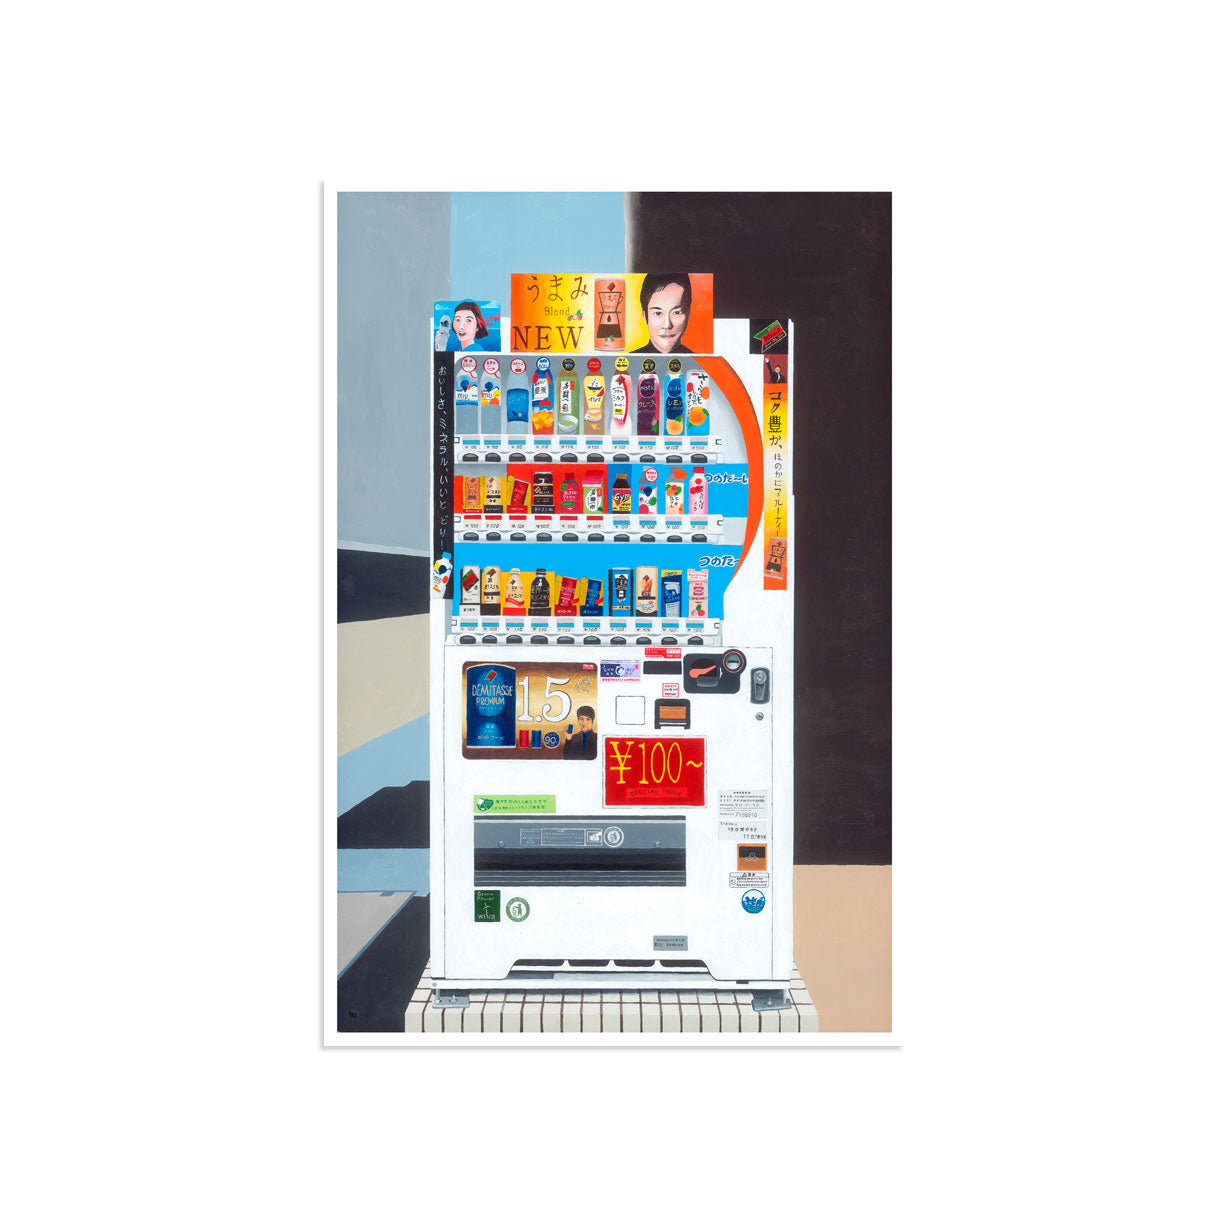 Japanese Vending Machine No. 8 by Horace Panter-Print-Poster Child Prints